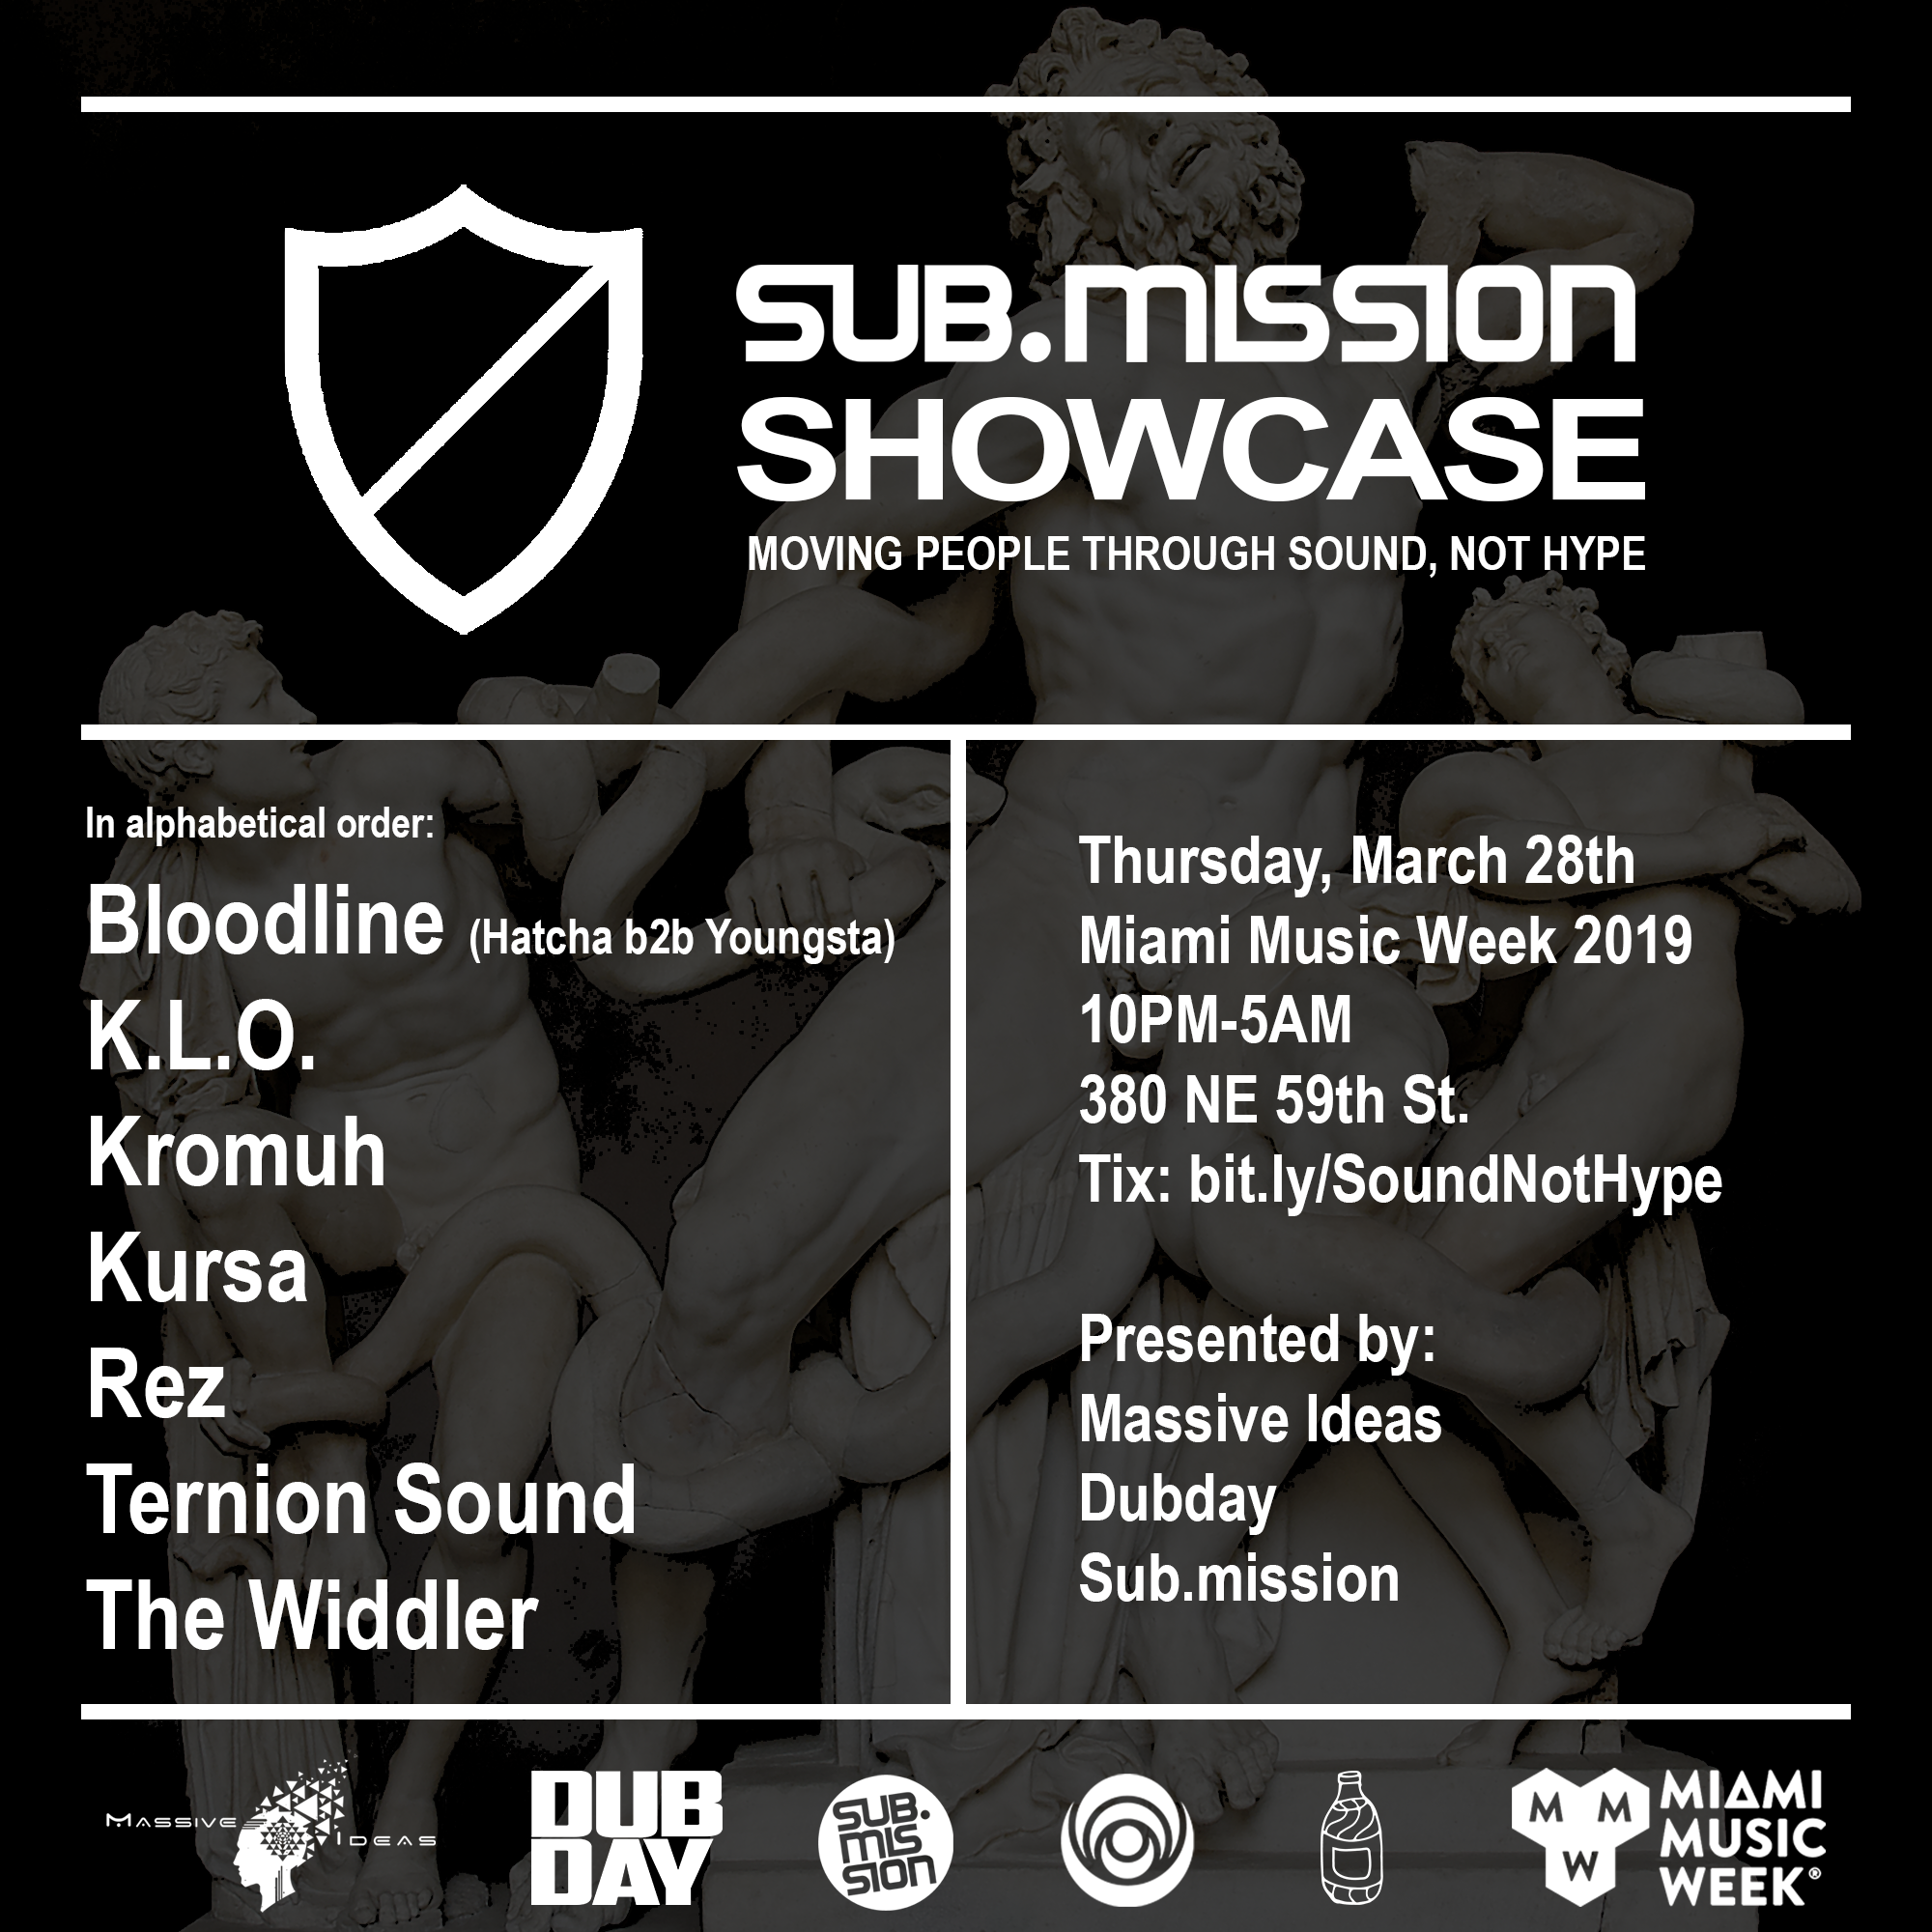 Sub.mission Showcase Image